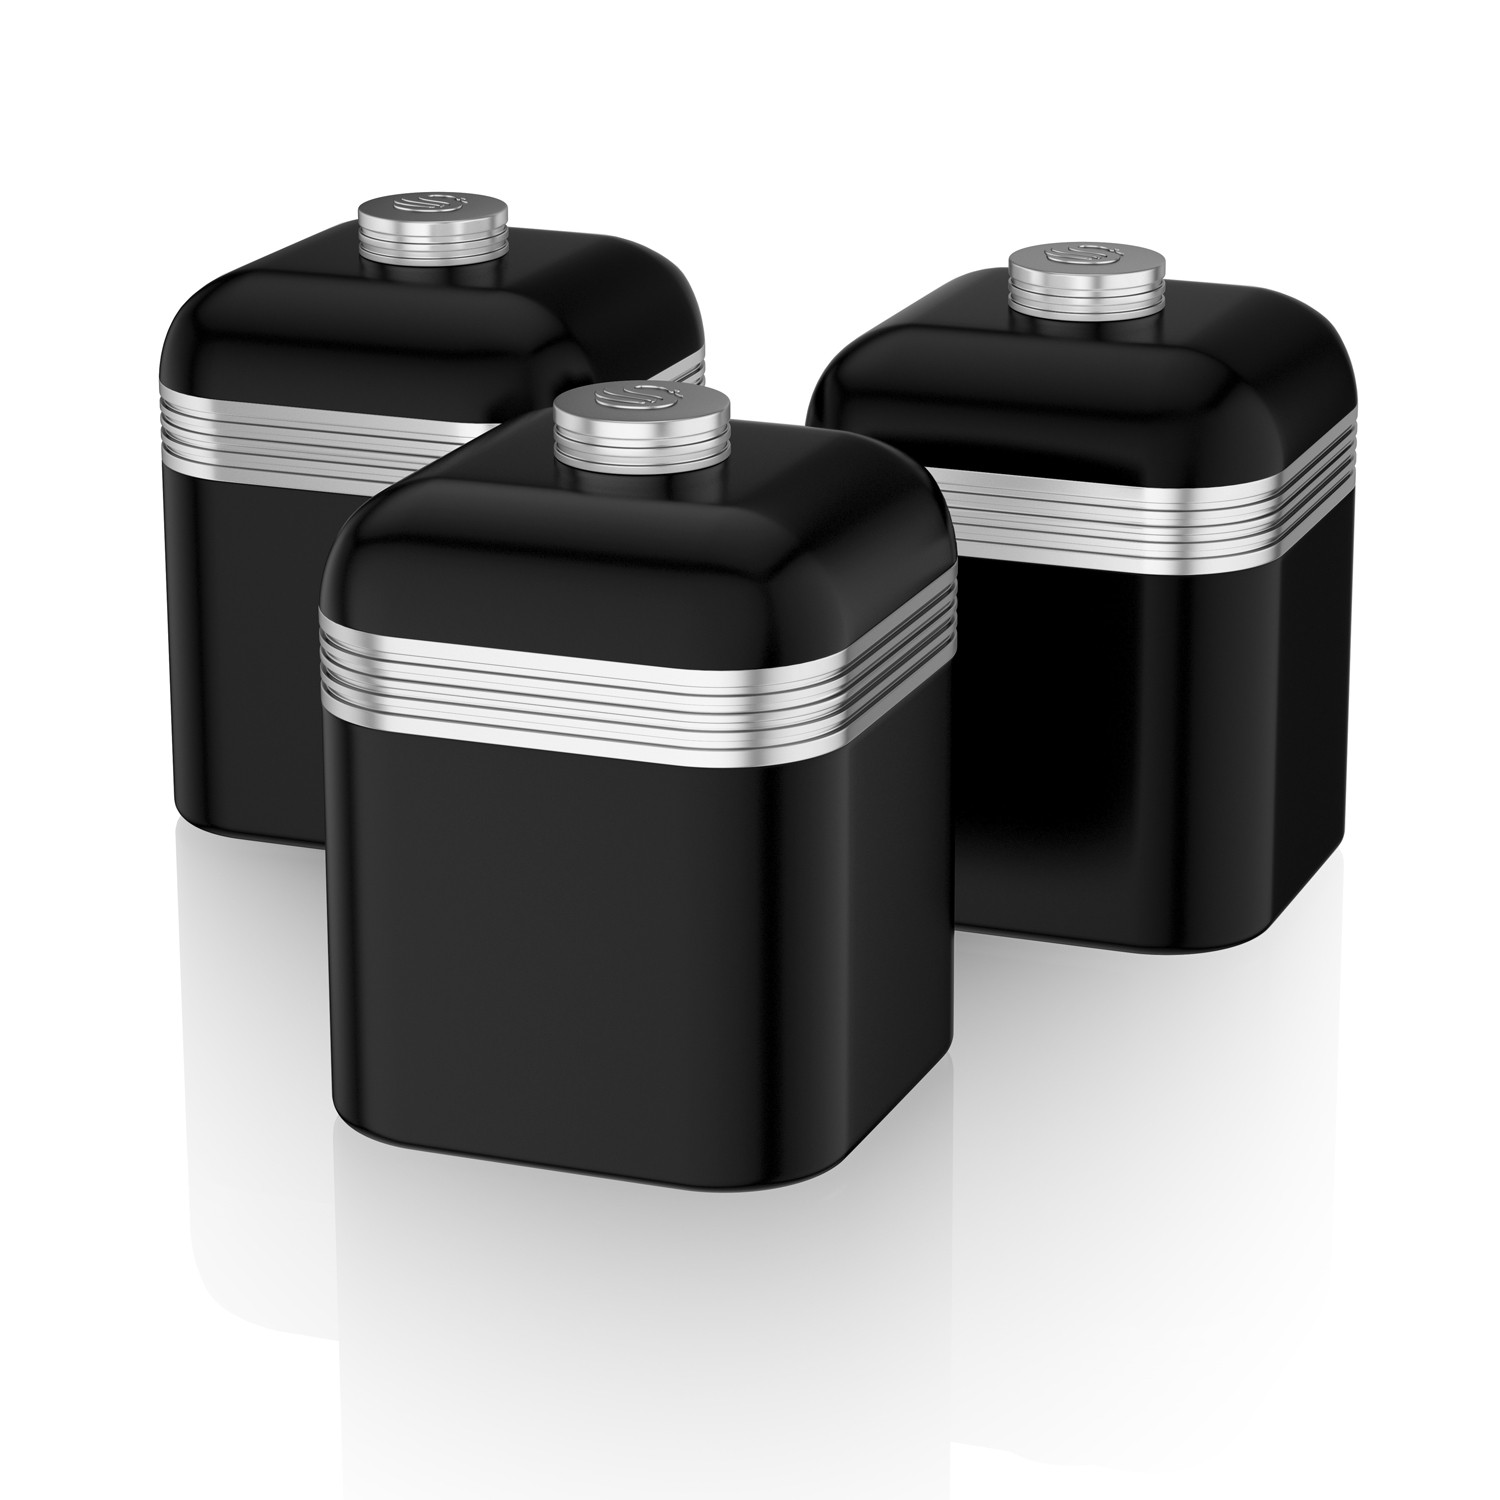 Swan Retro Set Of 3 Canisters Black Leekes